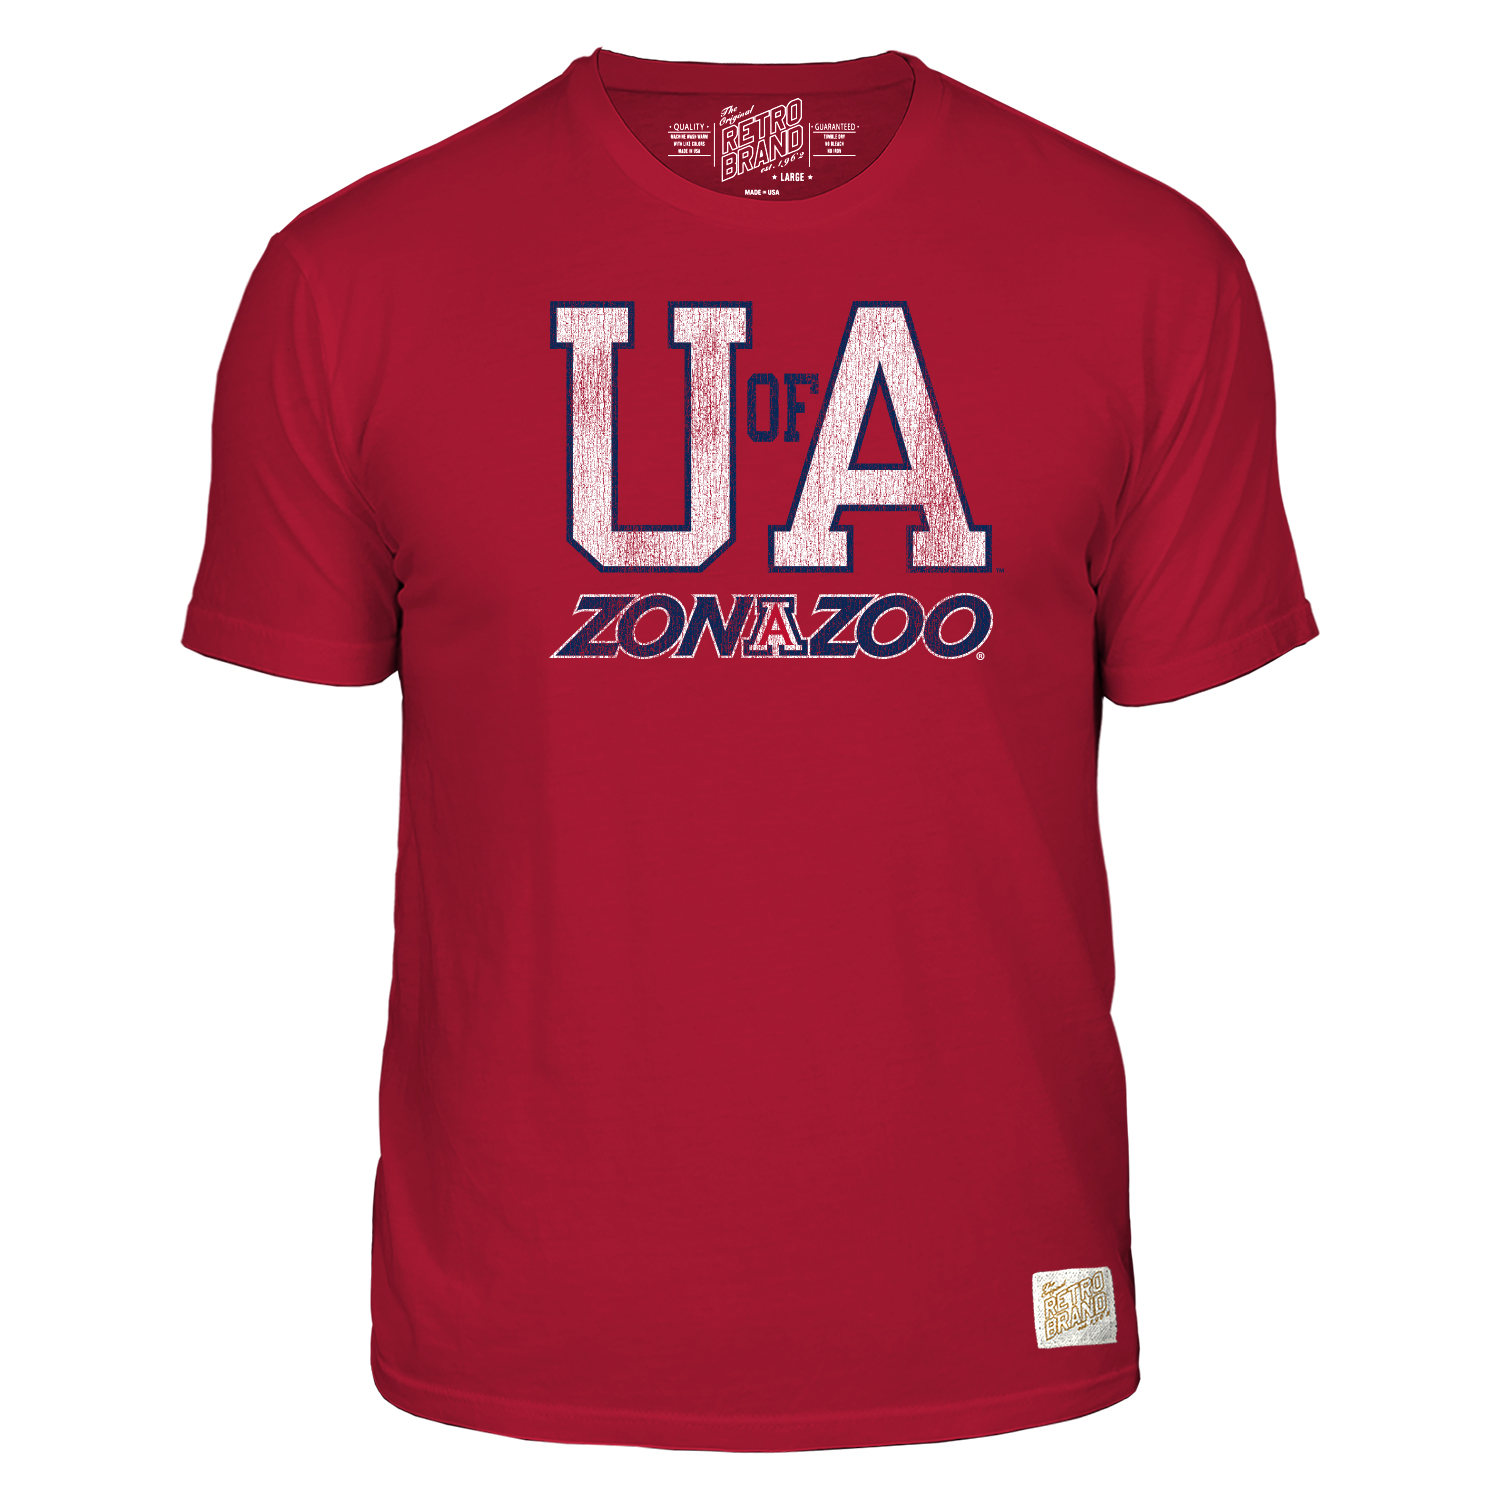 Image For Retro Brand: Arizona UofA Zona Zoo Tee - Red